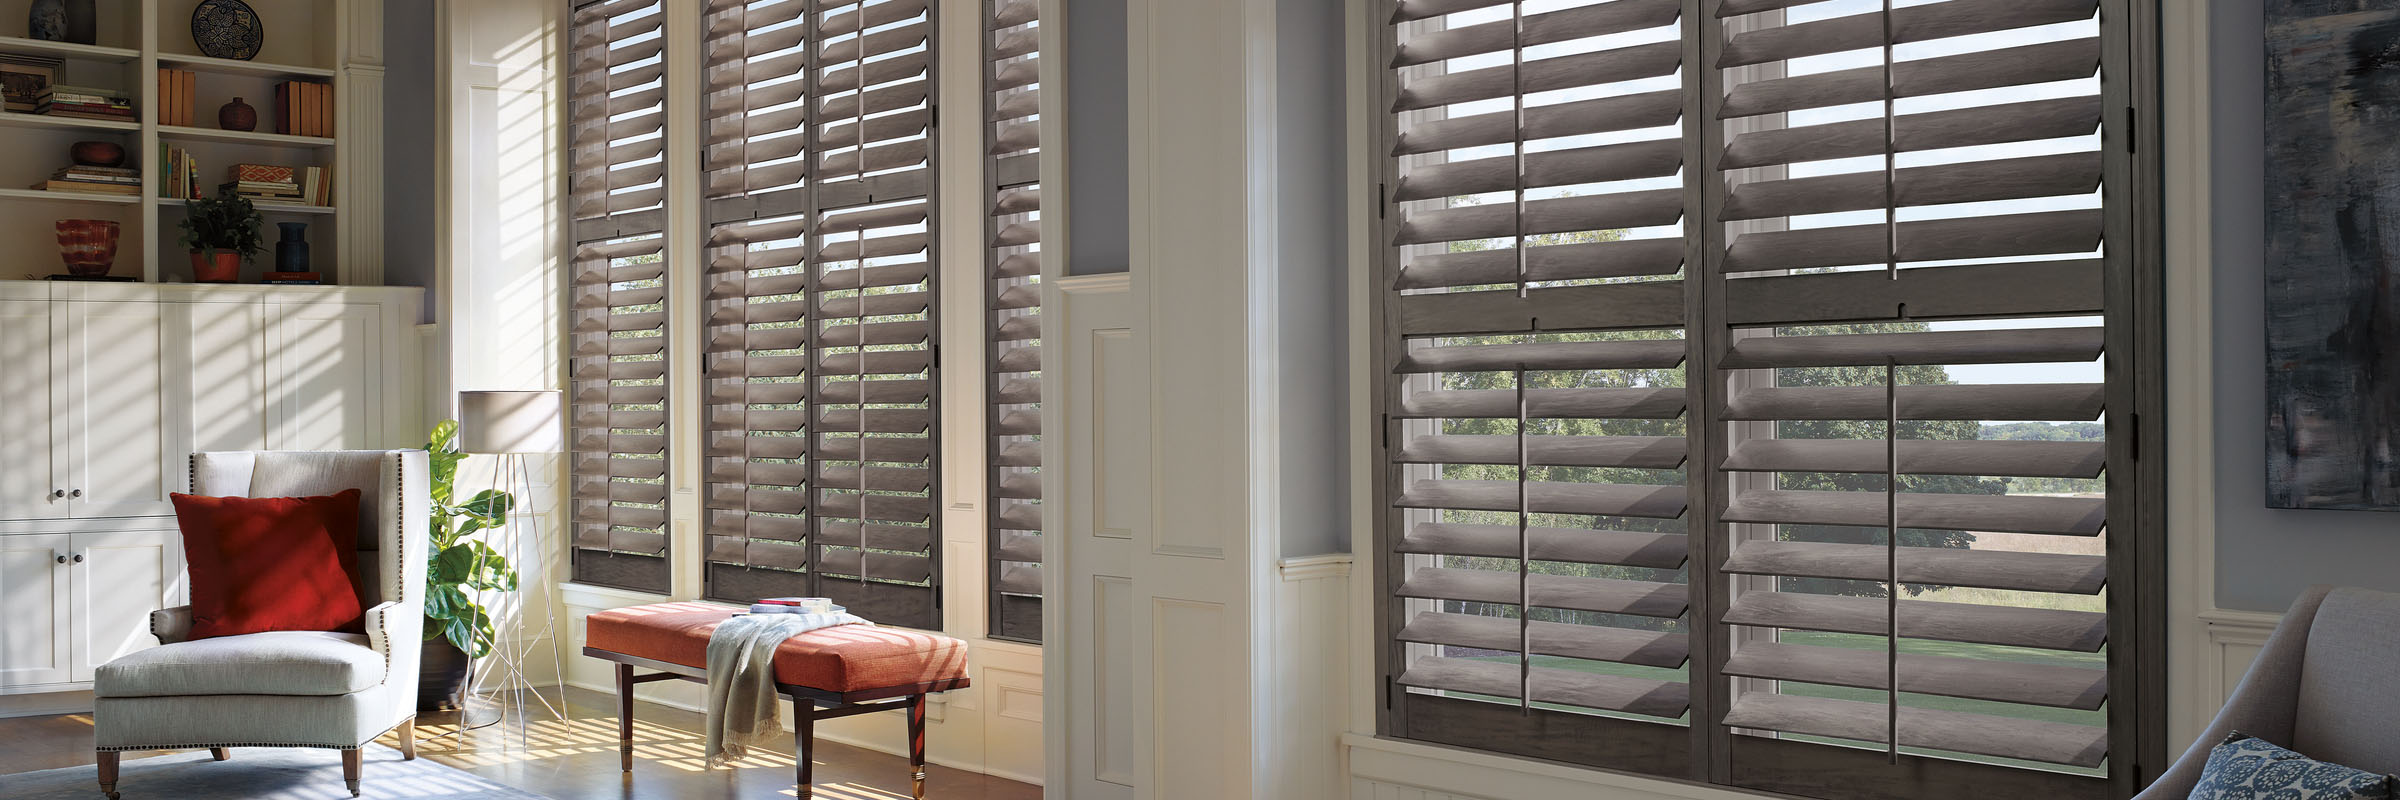 Heritance® Hardwood Shutters -Plantation Shutters In a Class All Their Own